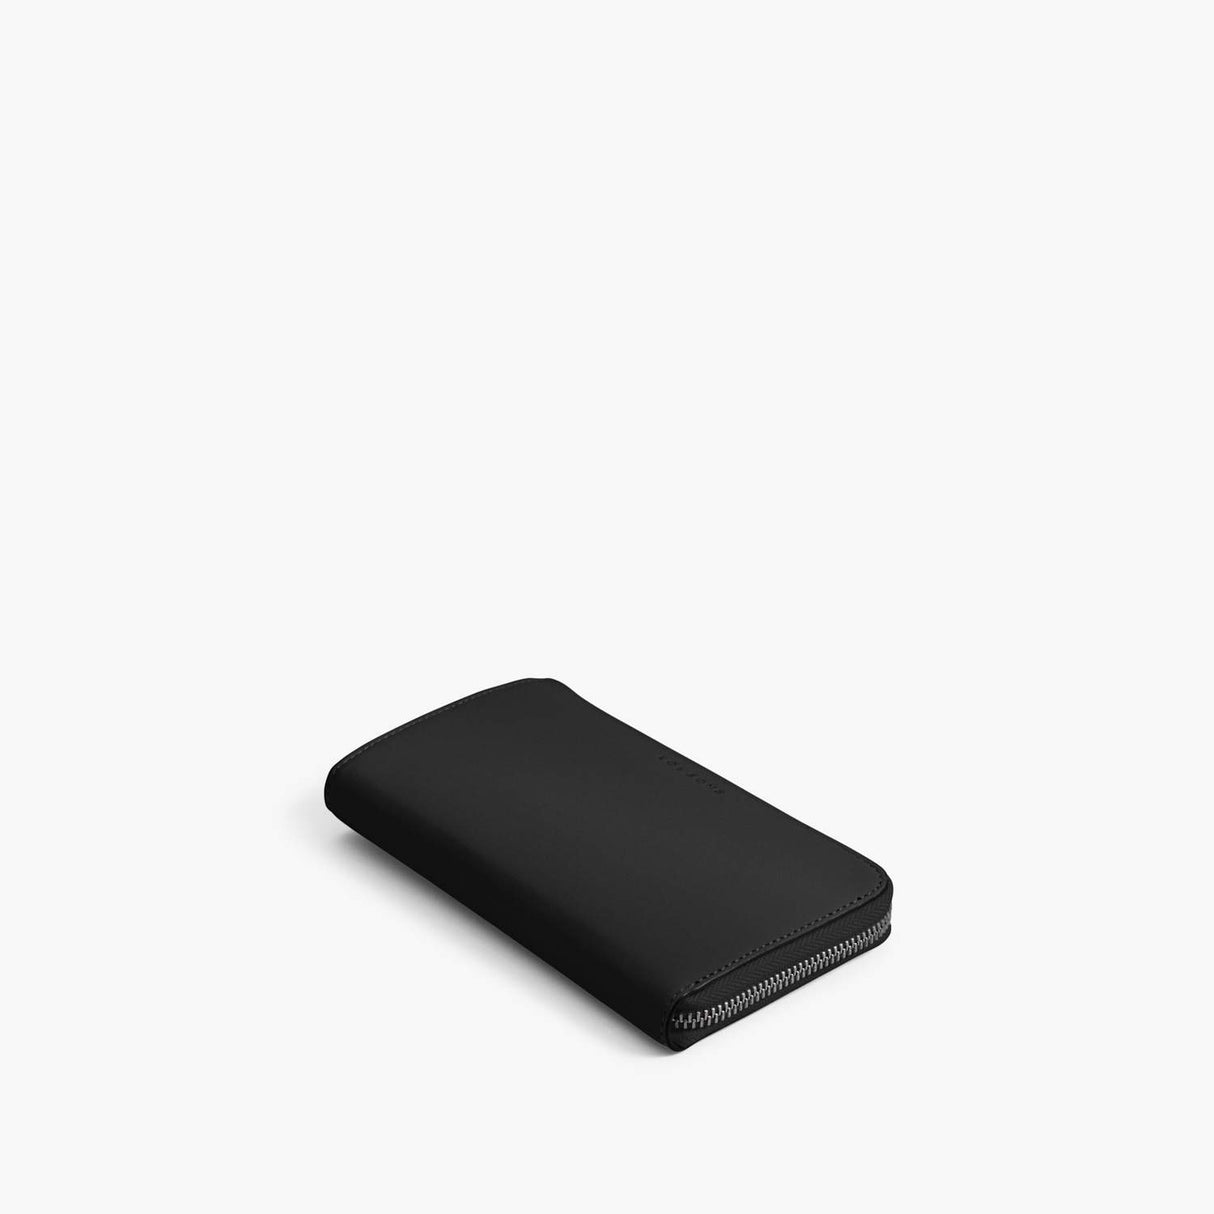 Front - Leather Wallet - Nappa Leather - Black / Gunmetal / Grey - Small Accessory - Lo & Sons